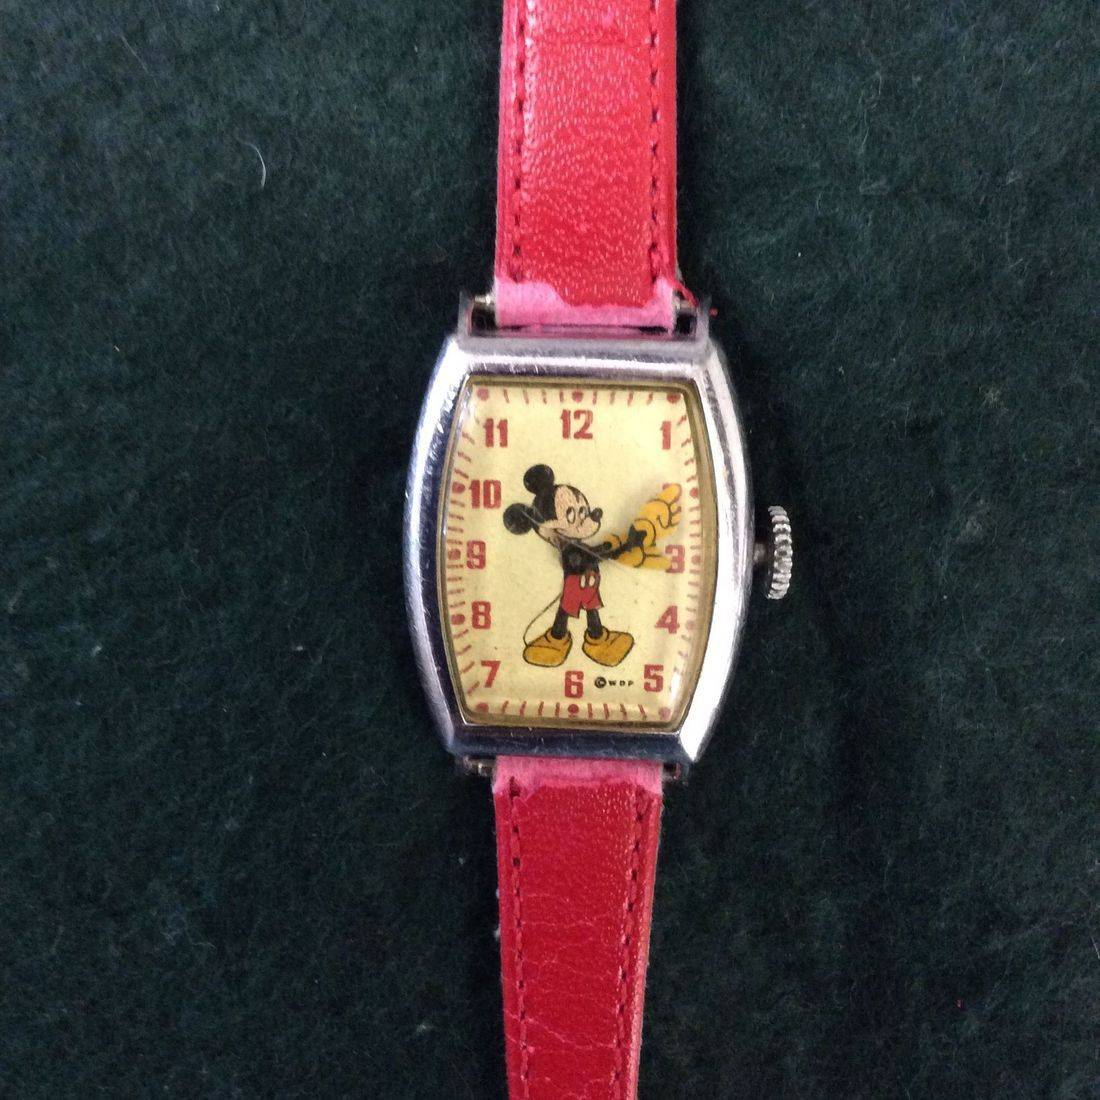 C. 1940's/50's WDP Mickey Mouse #4740 'Working' Wind-up Watch   $65.00